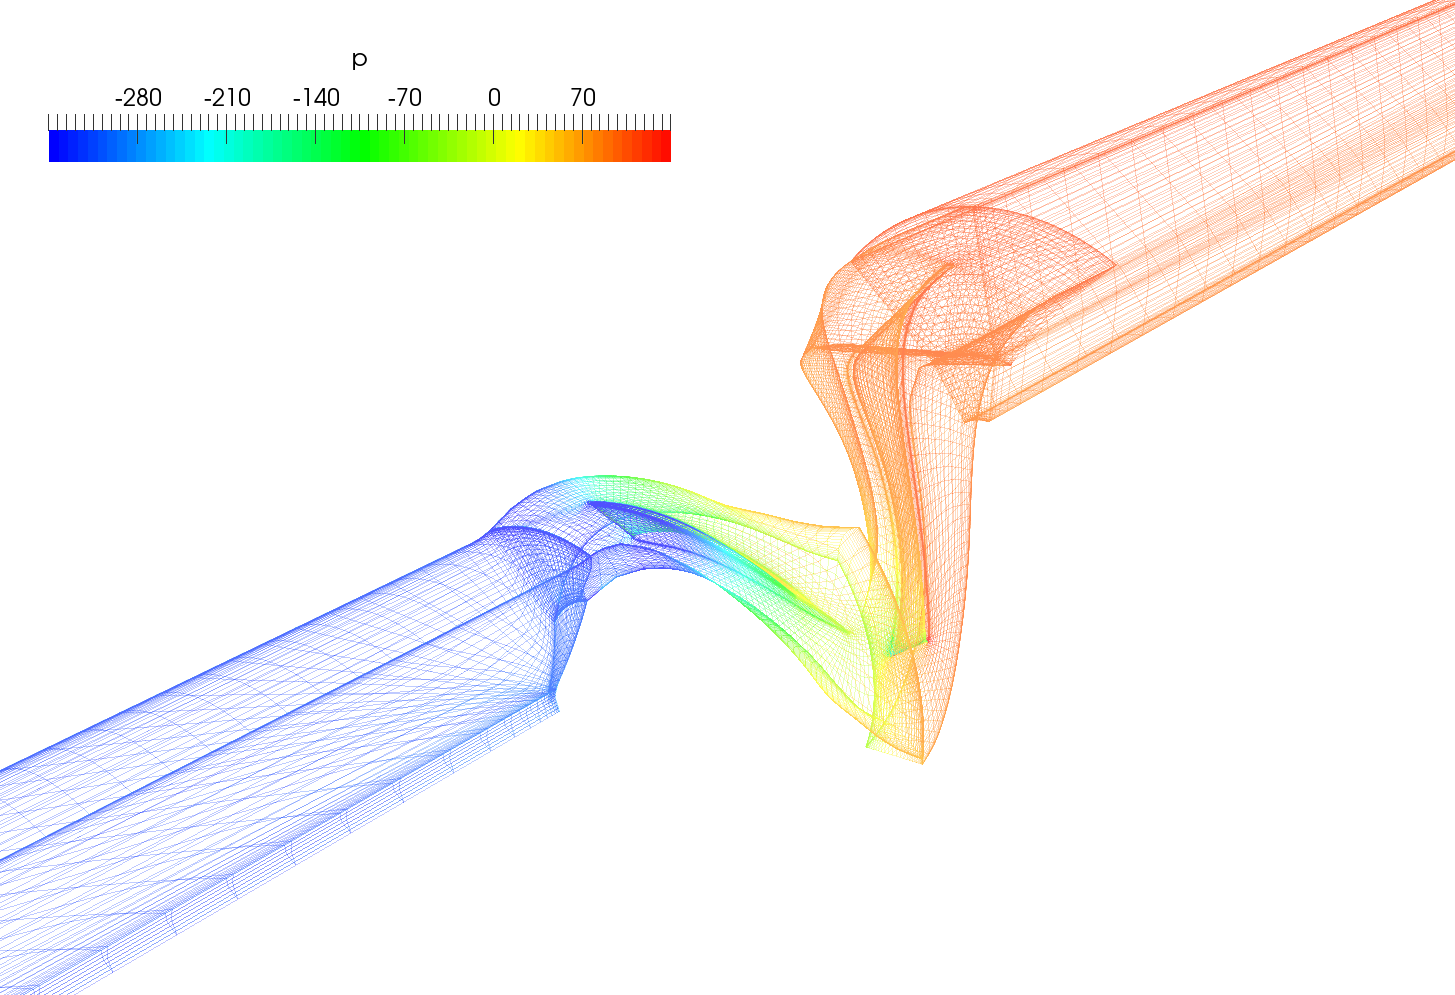 Axial Pump Turbomachinery CFD Mesh Pressure